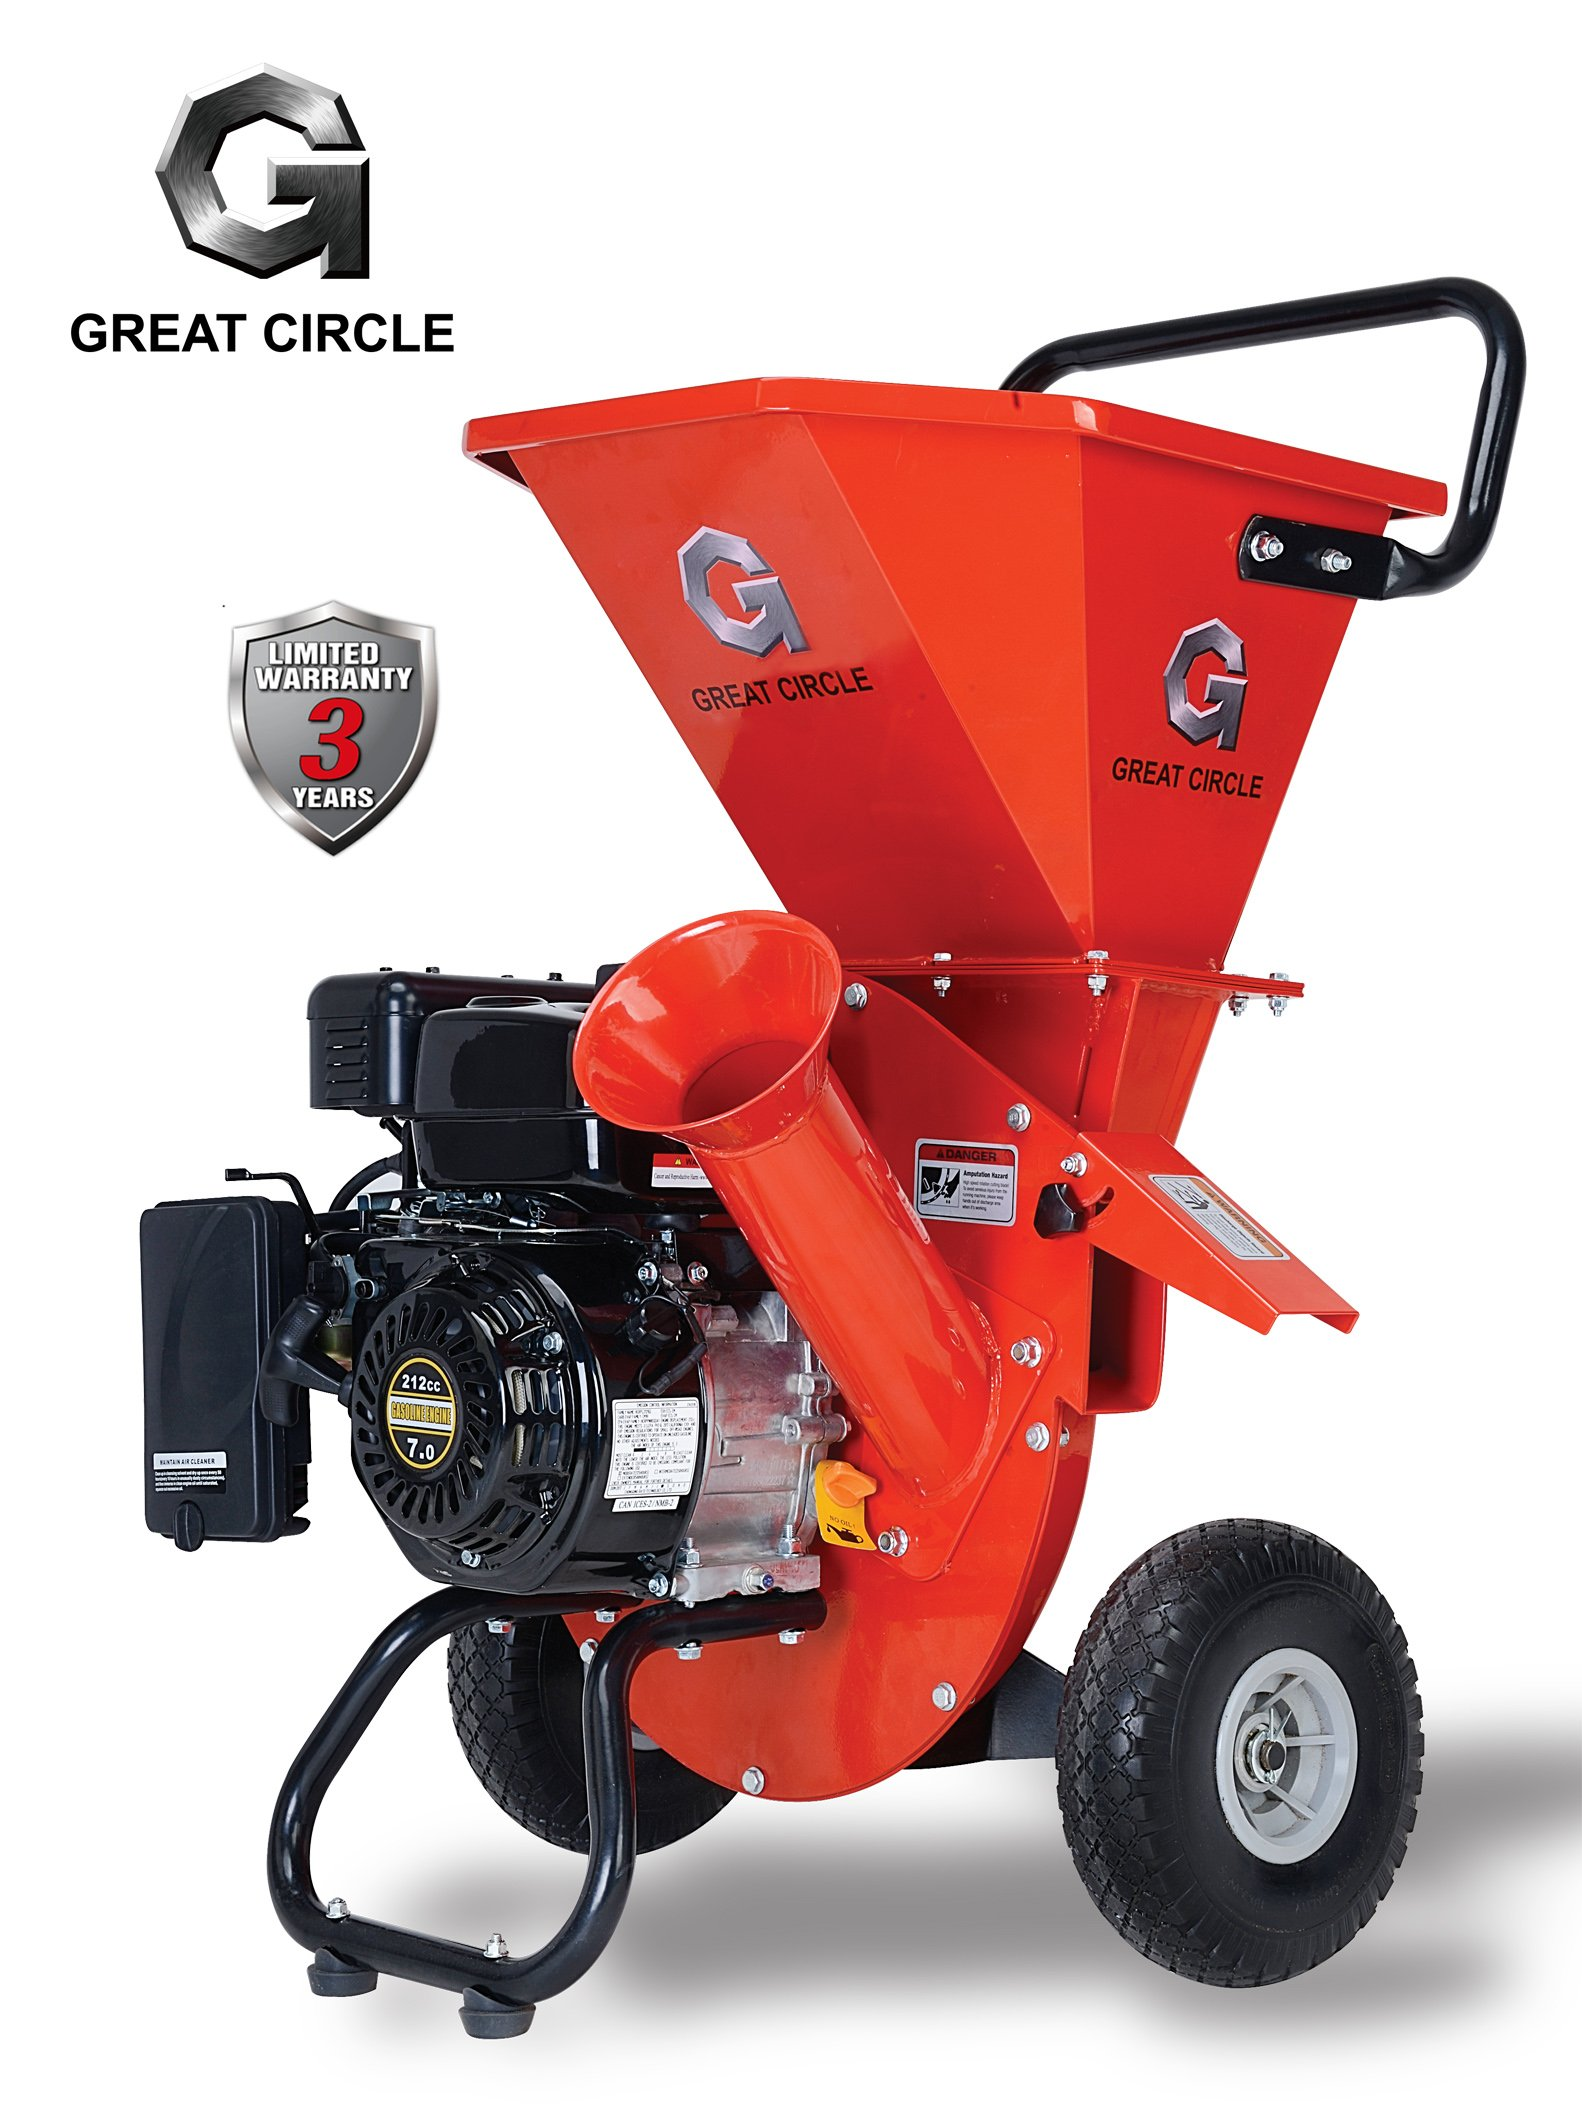 GreatCircleUSA 7HP Heavy Duty 212cc Gas Powered 3 IN 1 Multi-Function Pro Wood Chipper Shredder for Lawn and Garden Outdoor with 3'' max Wood Diameter Capacity, 3 Years Warranty